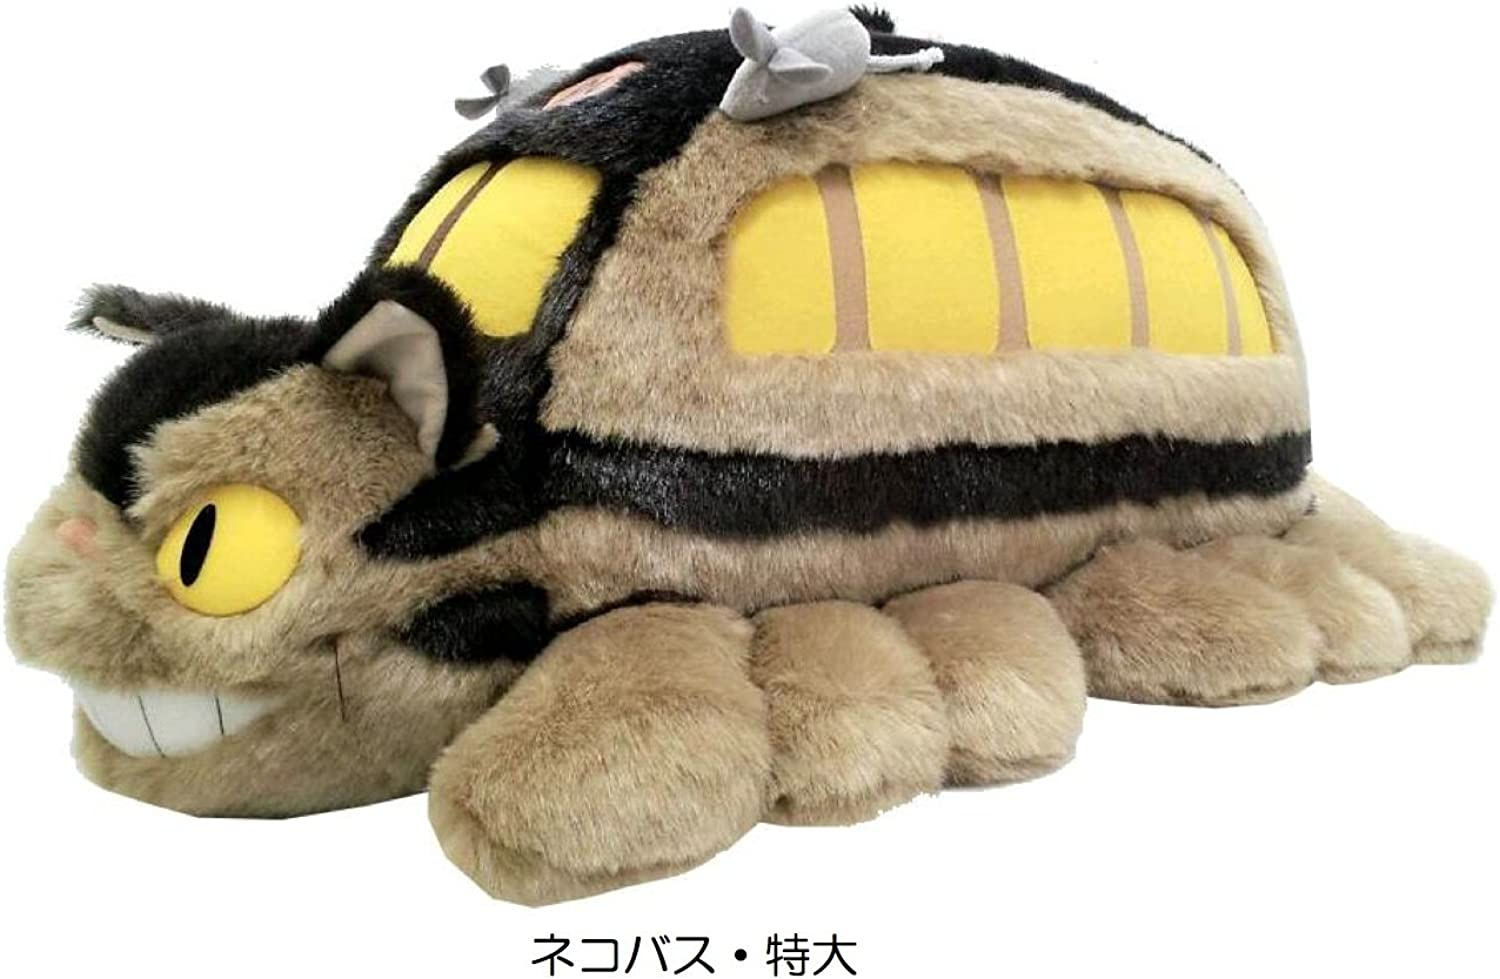 en venta en línea My Neighbor Totoro Big Cat Bus (Nekobasu) (Nekobasu) (Nekobasu) Xl Talla 31.5  Plush Doll Soft Juguete by Studio Ghibli   San Arrow  autentico en linea